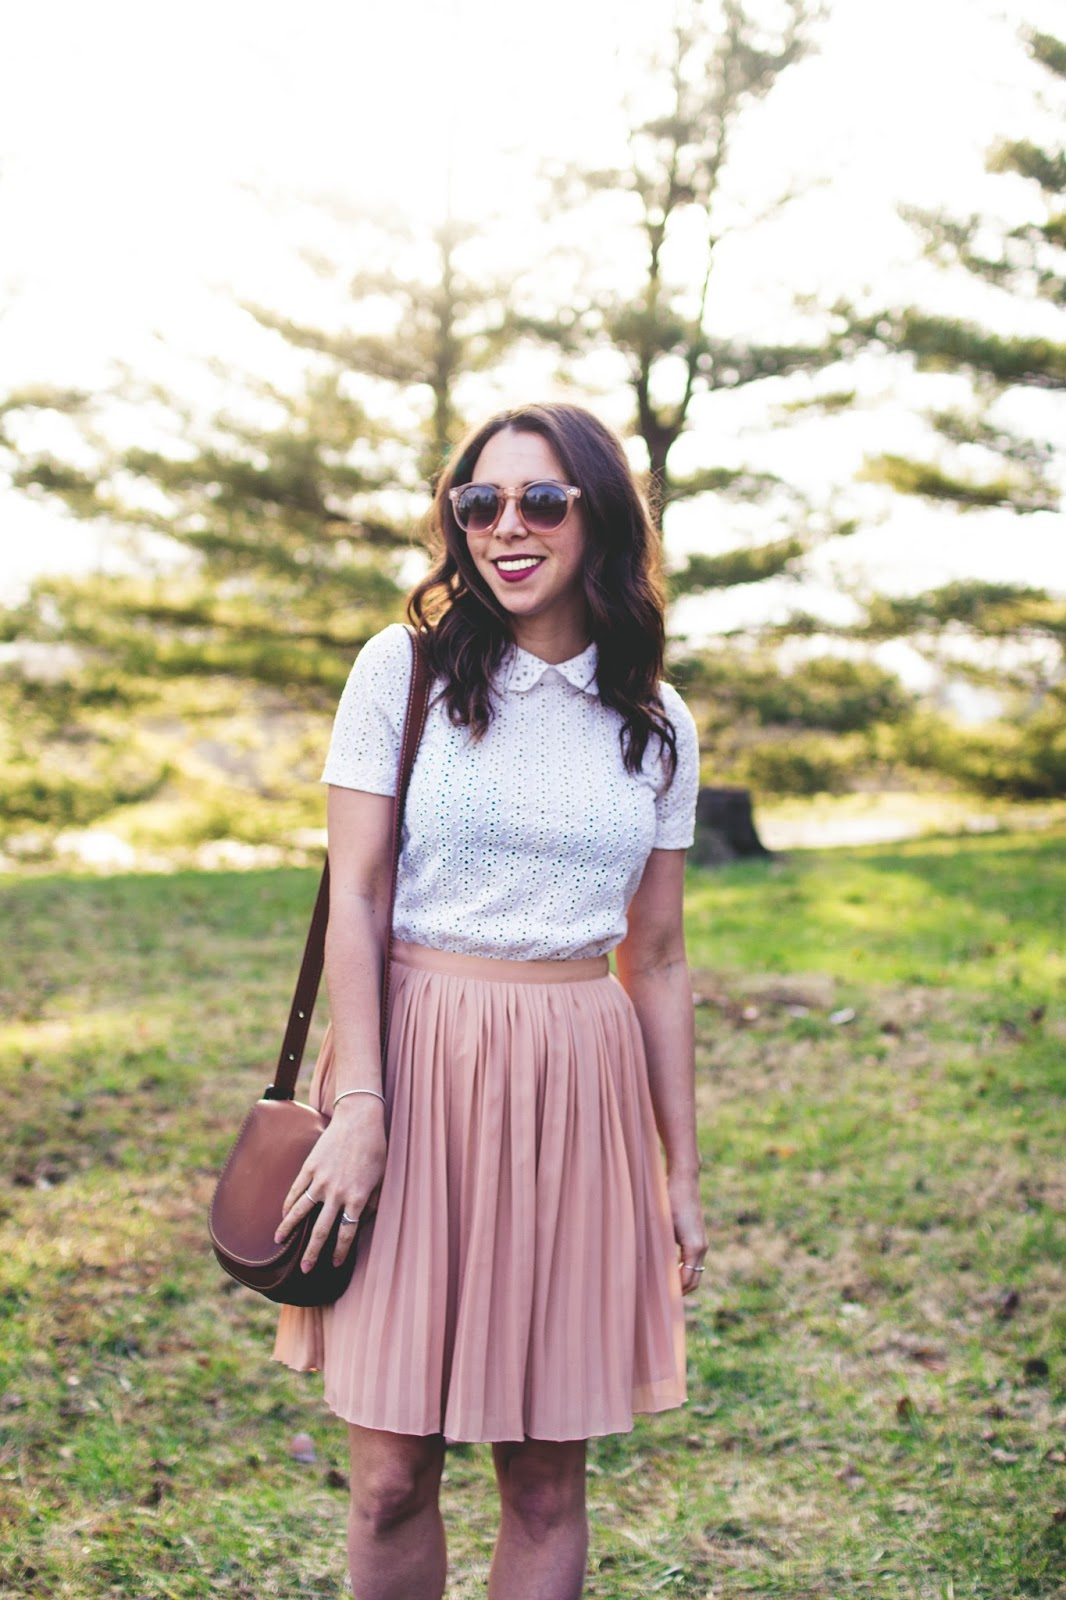 pleated-skirt-eyelet-top-style-dc-blogger-avizastyle-andrea-viza